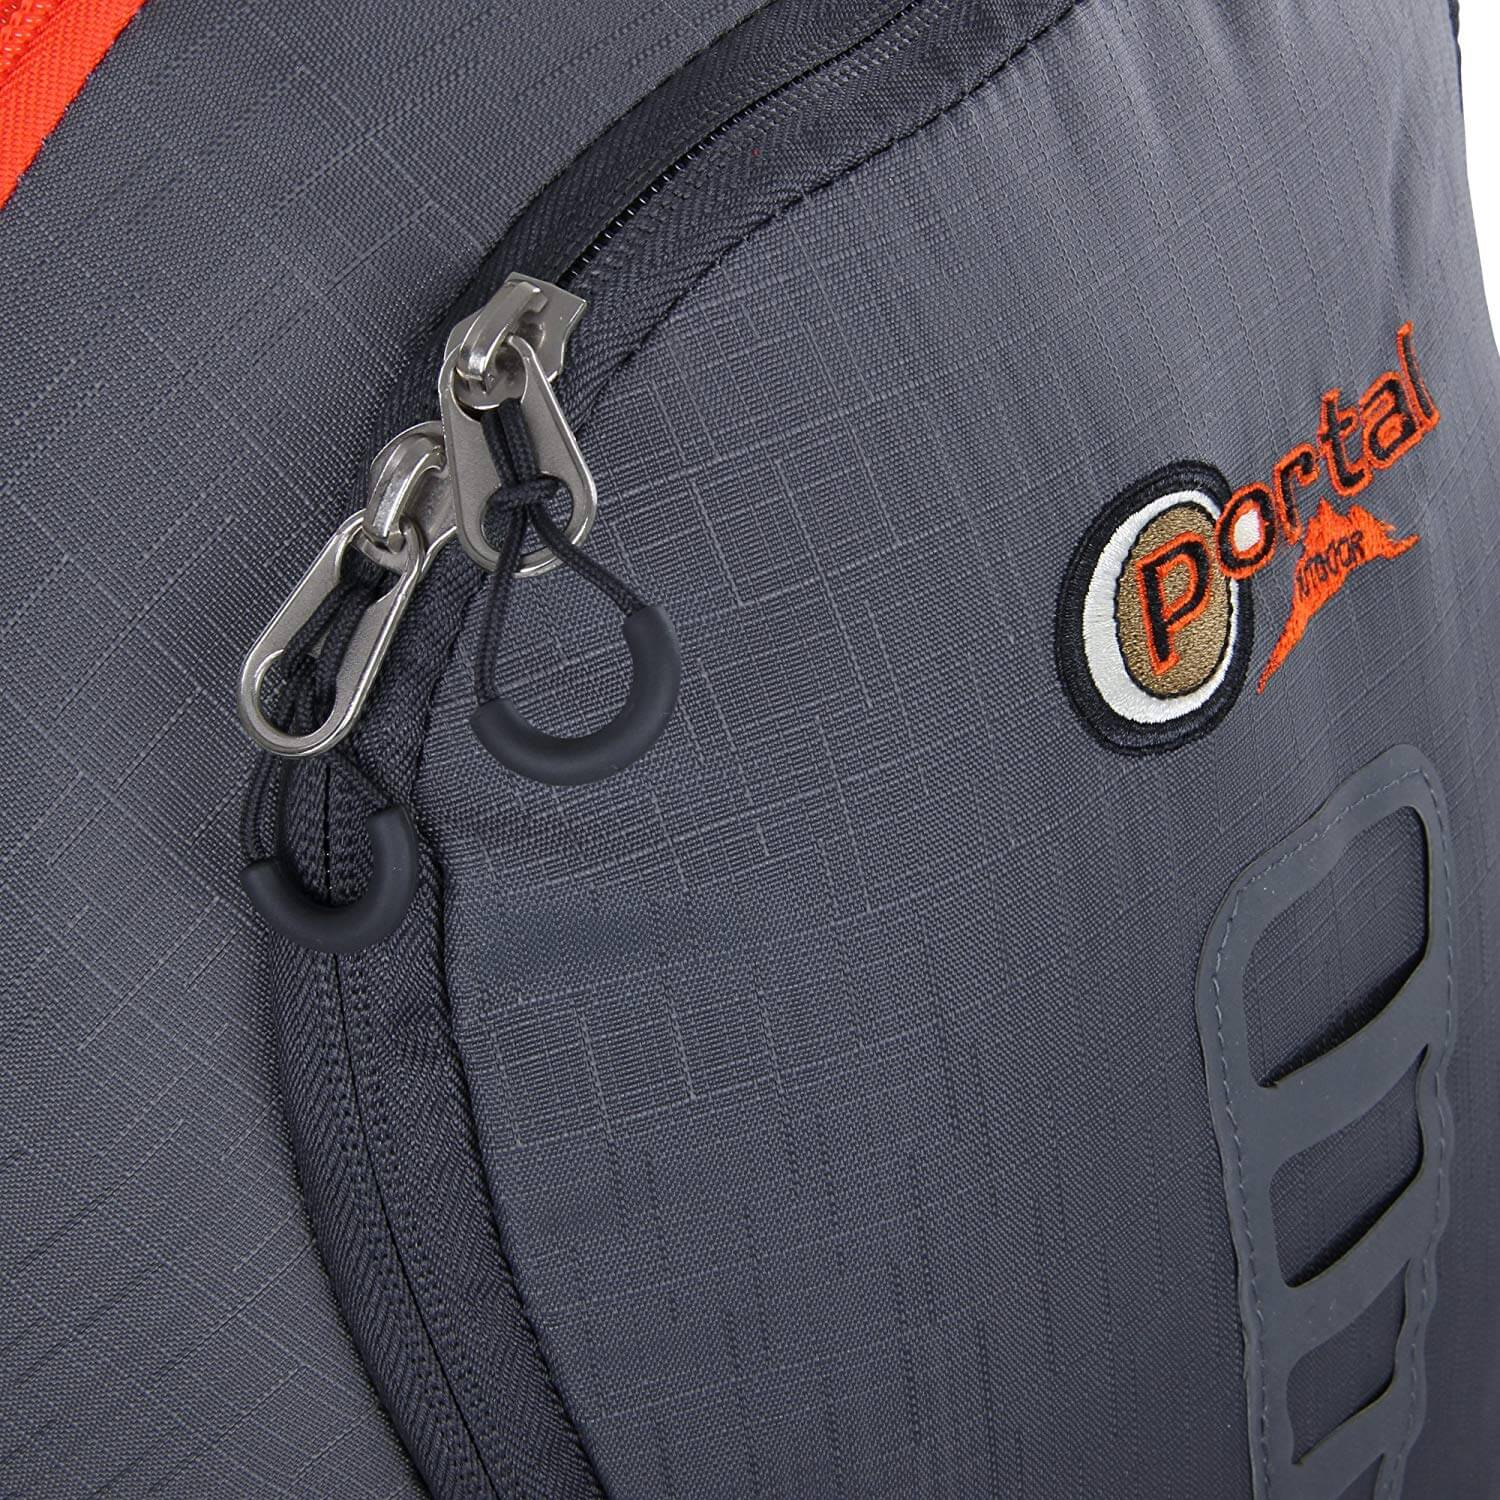 Close up image of Portal Outdoor backpack showing zipper.